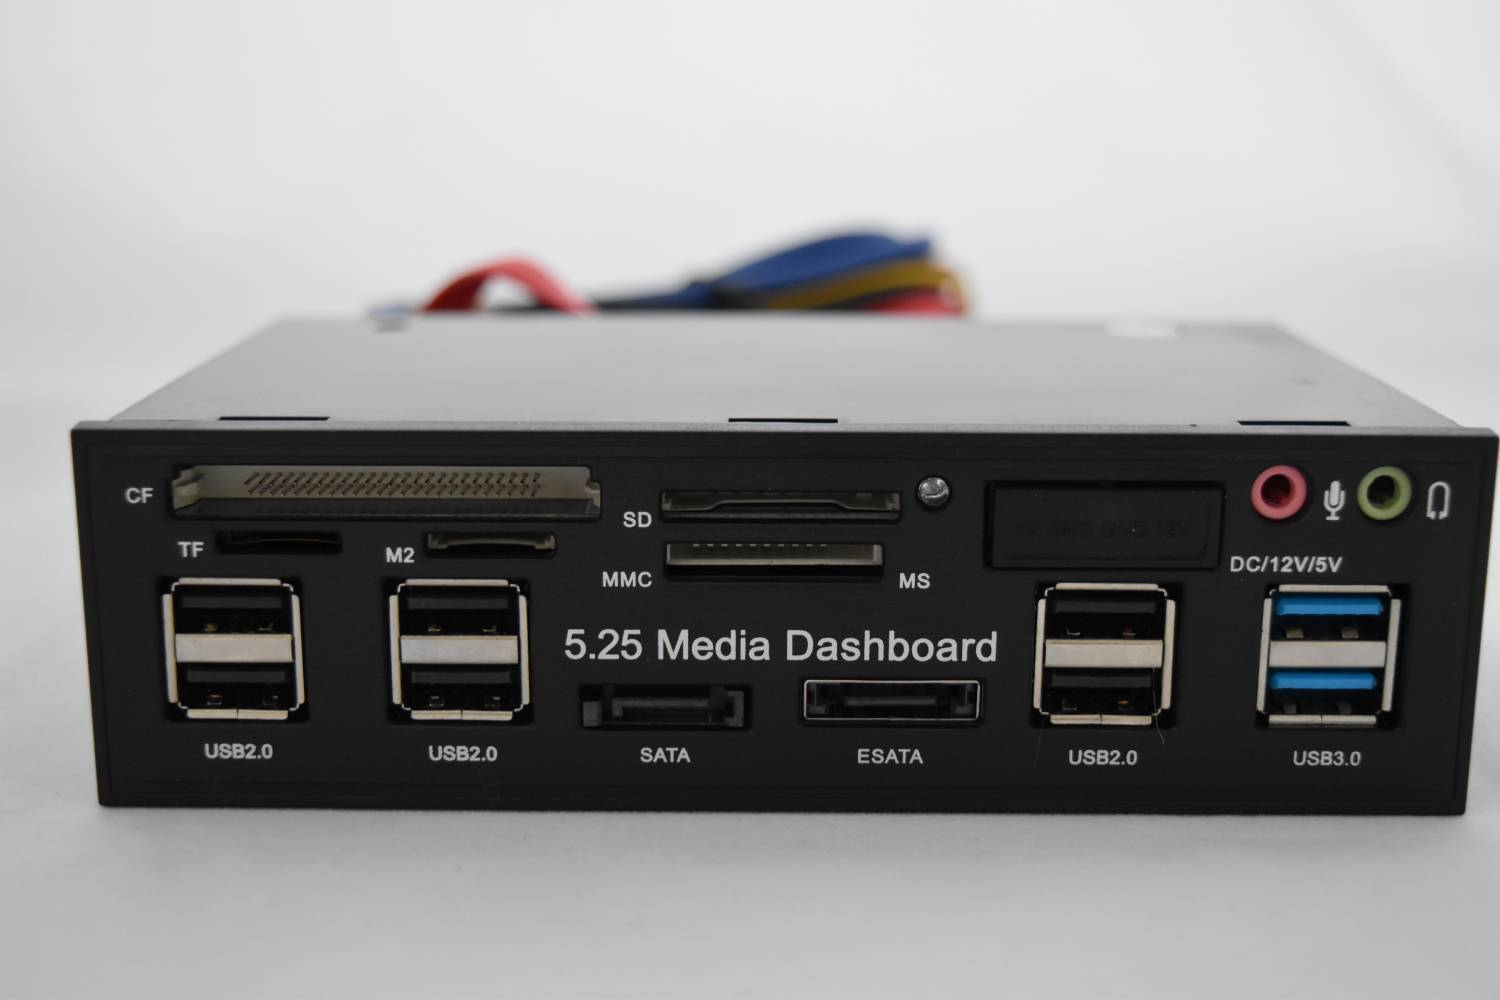 TVC-Mall: 5.25 inch USB 3.0 PC Media Dashboard Front Panel Card Reader HUB SATA eSATA - универсальный кардридер